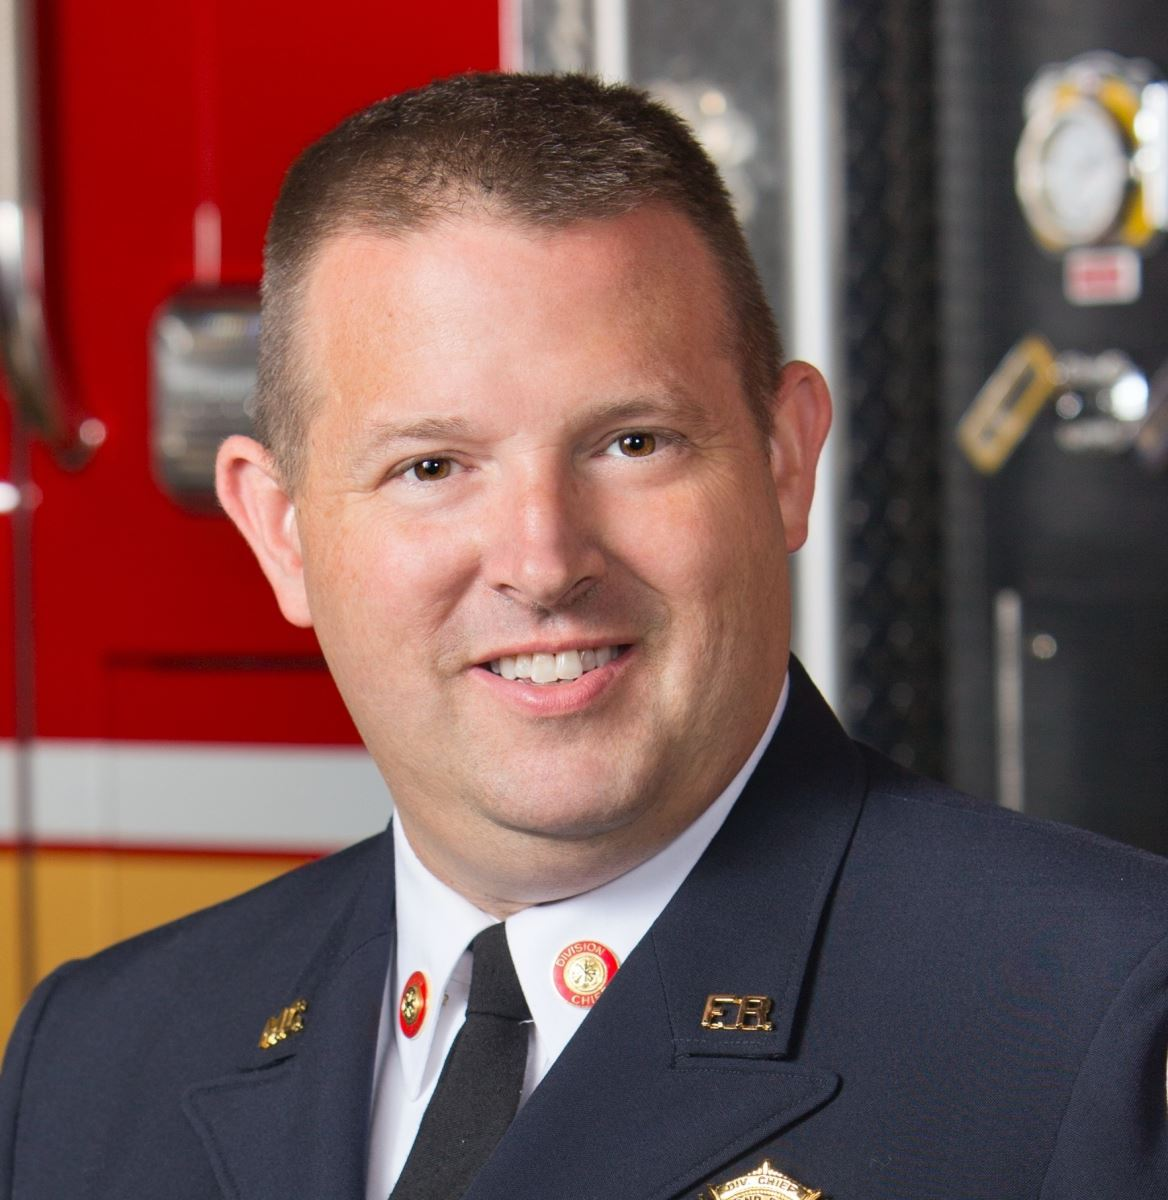 Fire Chief Scott Goldstein